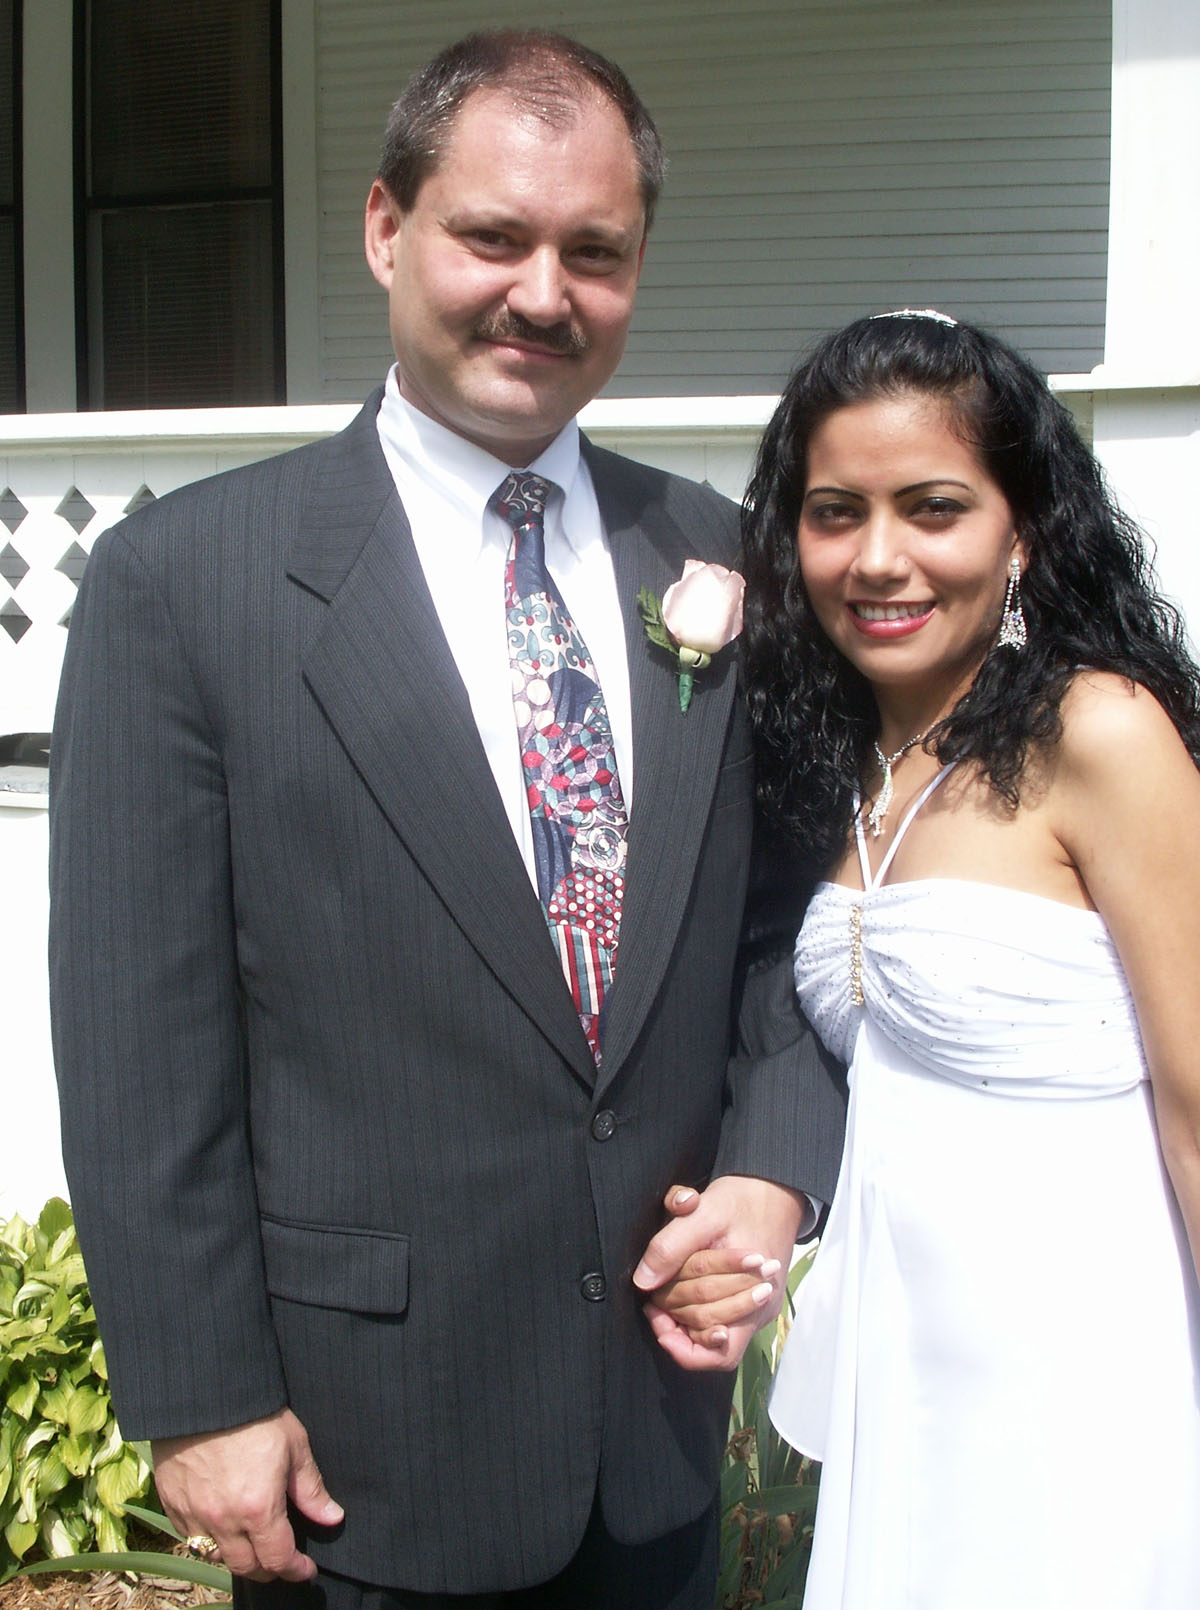 Randy Nida marries Zuany Marcela Gomez 06-10-2007